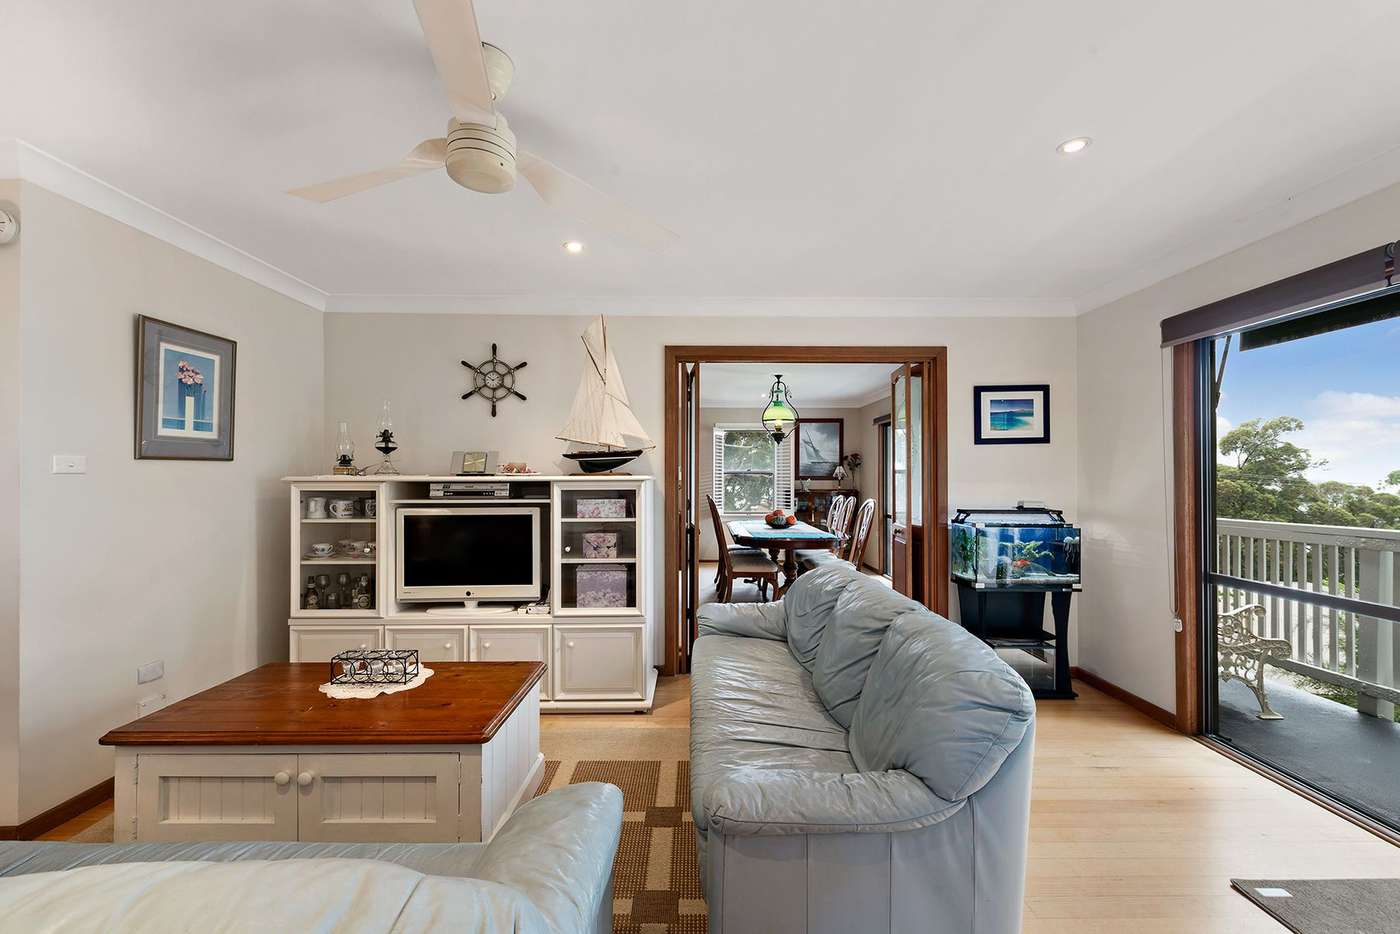 Fifth view of Homely house listing, 13 Government Road, Nords Wharf NSW 2281